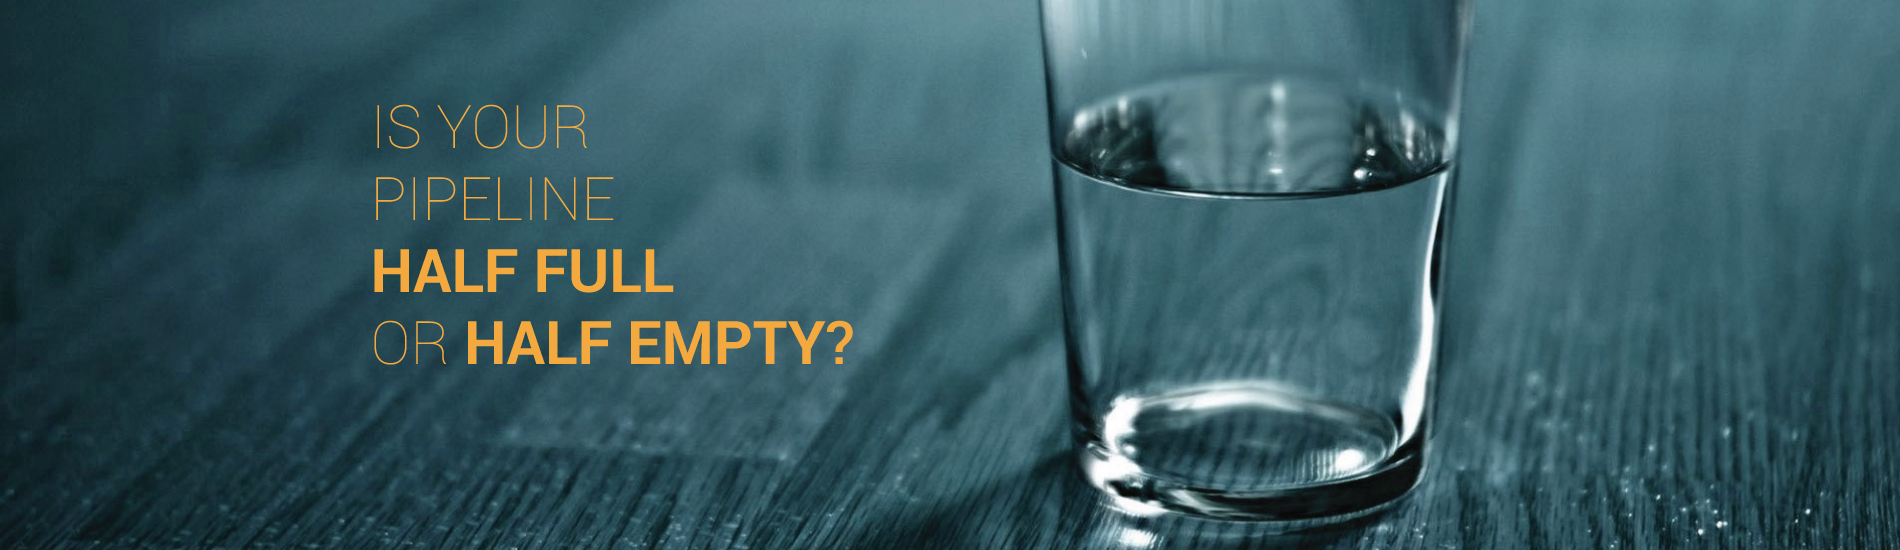 Is Your Pipeline HALF FULL or HALF EMPTY?